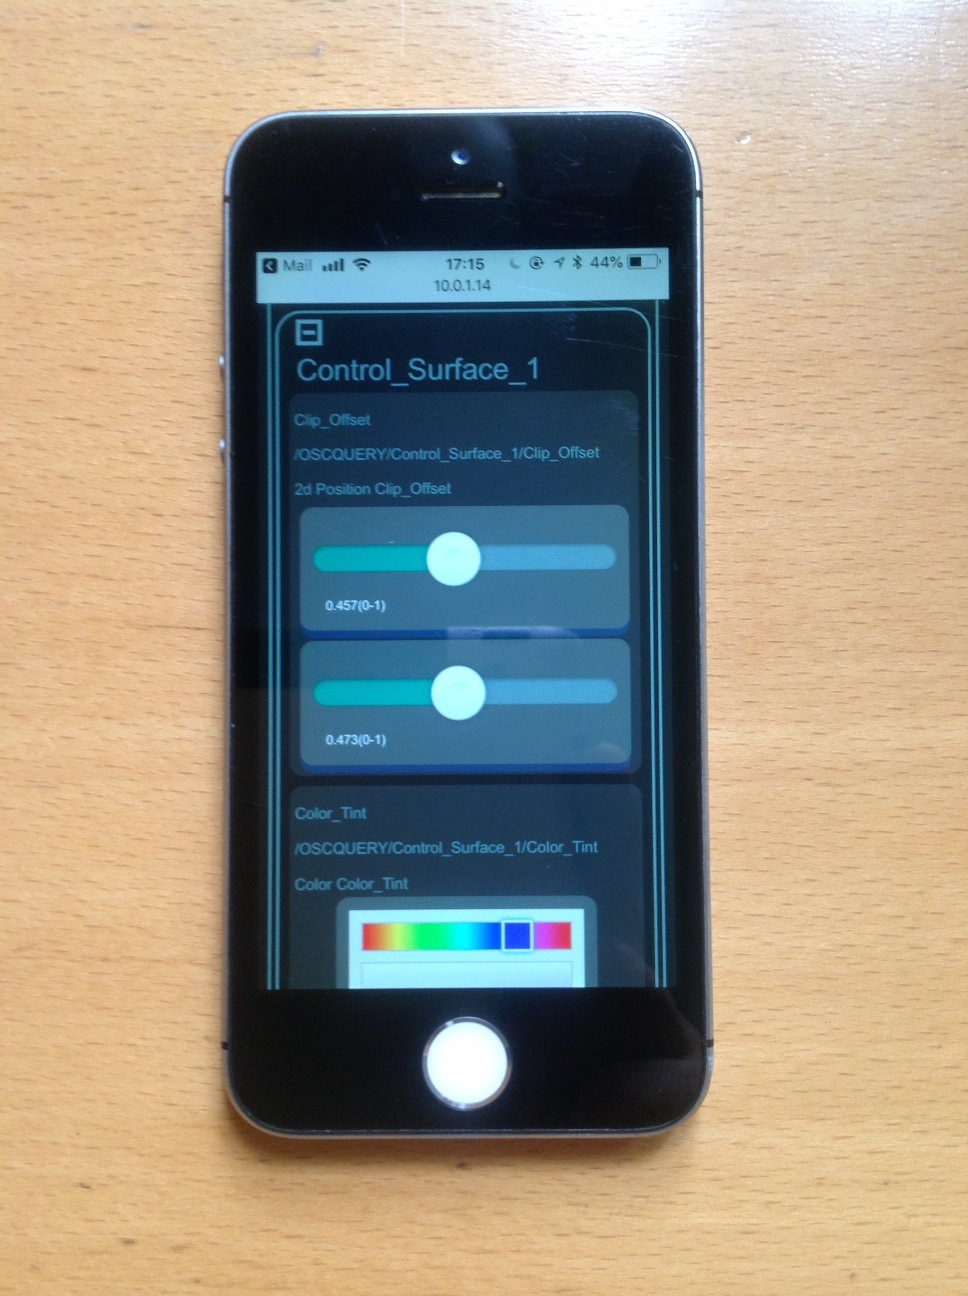 The Interactive HTML Interface viewed on an iPhone for remote control of VDMX parameters.